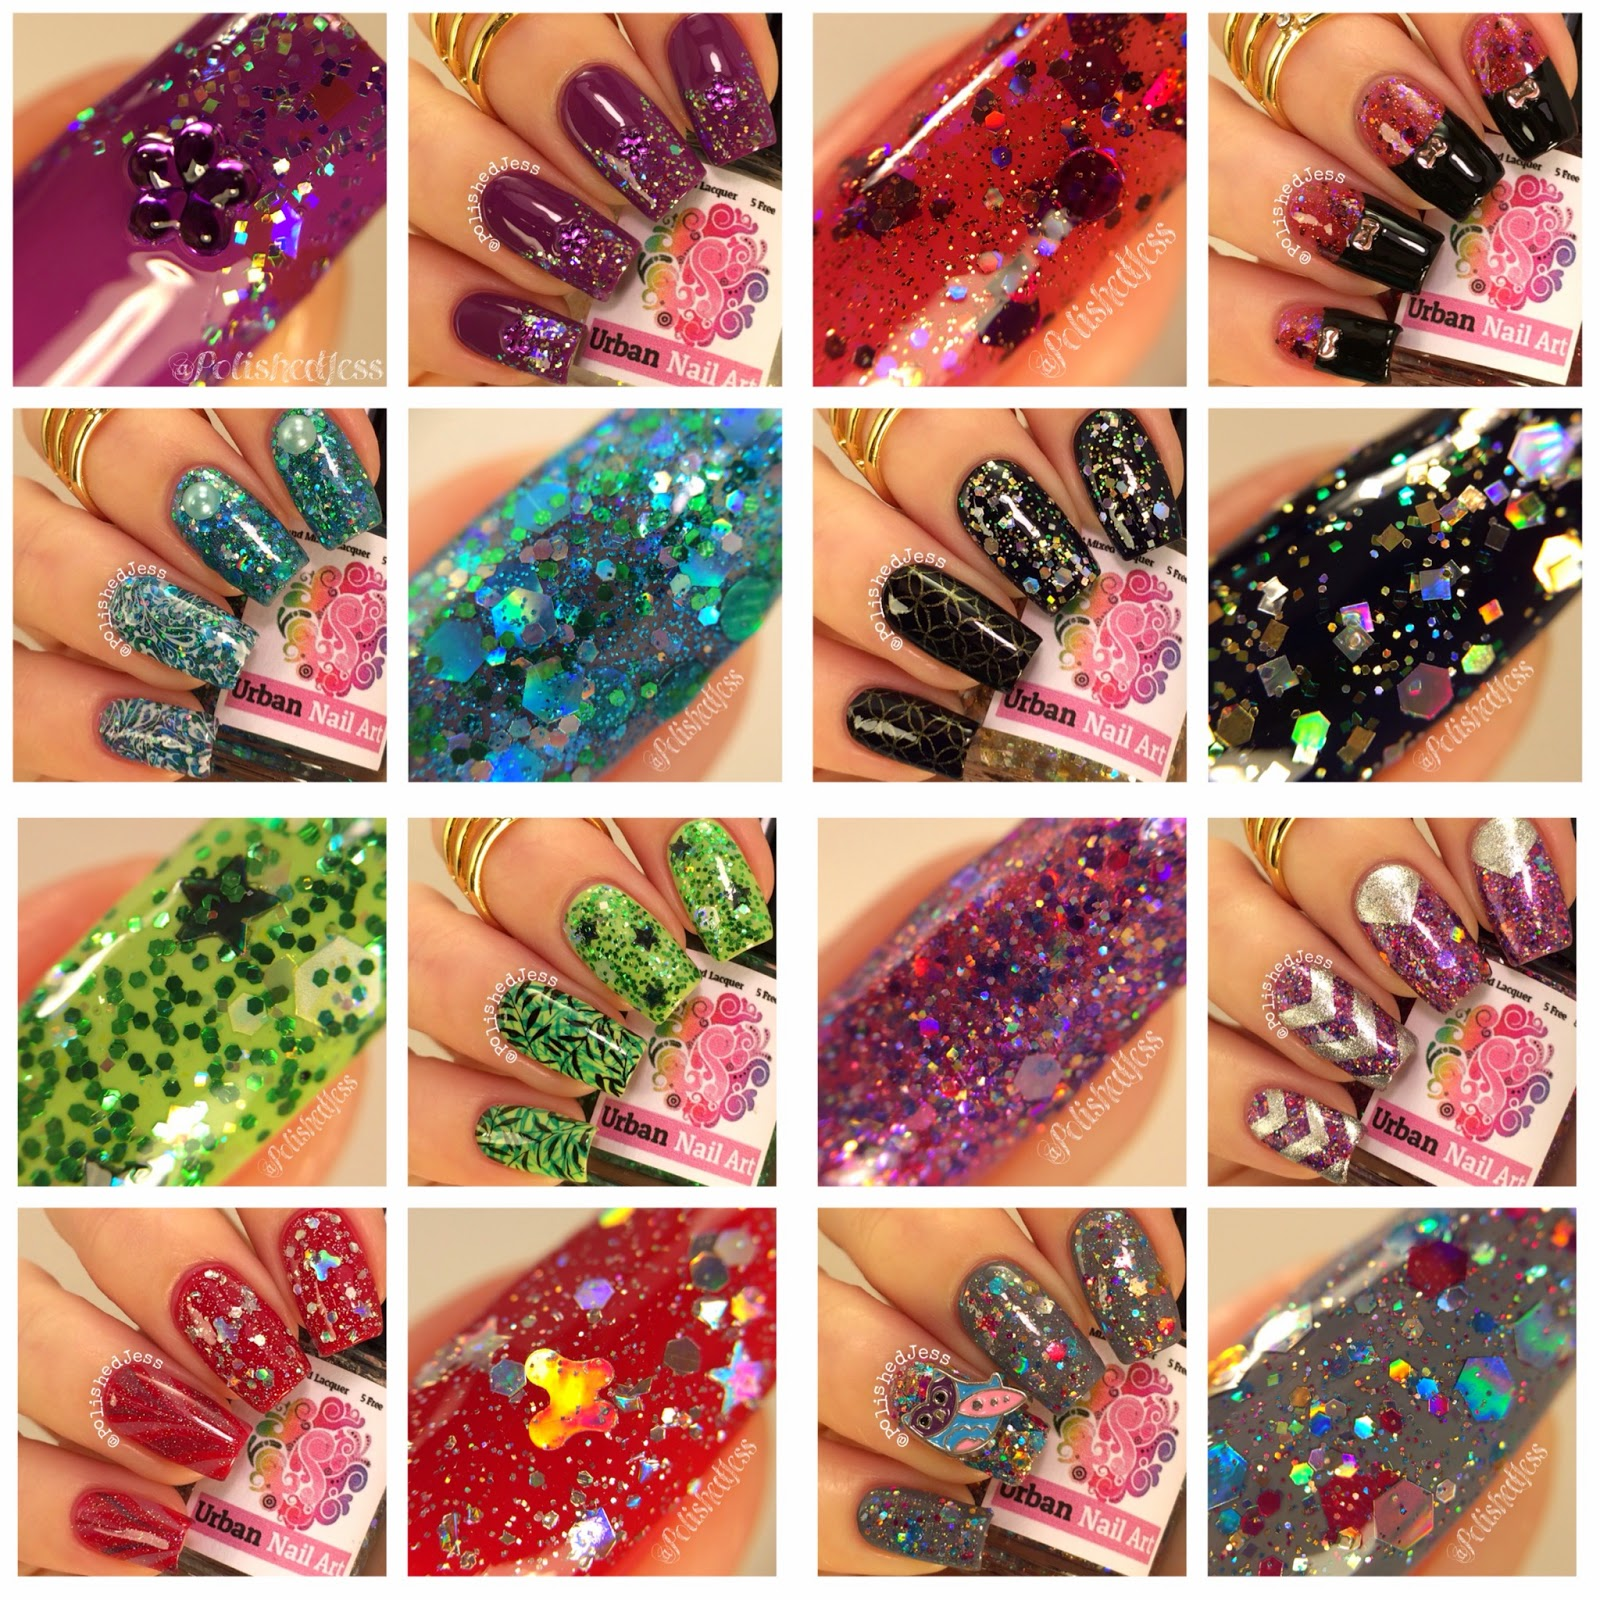 Polished Jess Urban Nail Art Olympia Collection